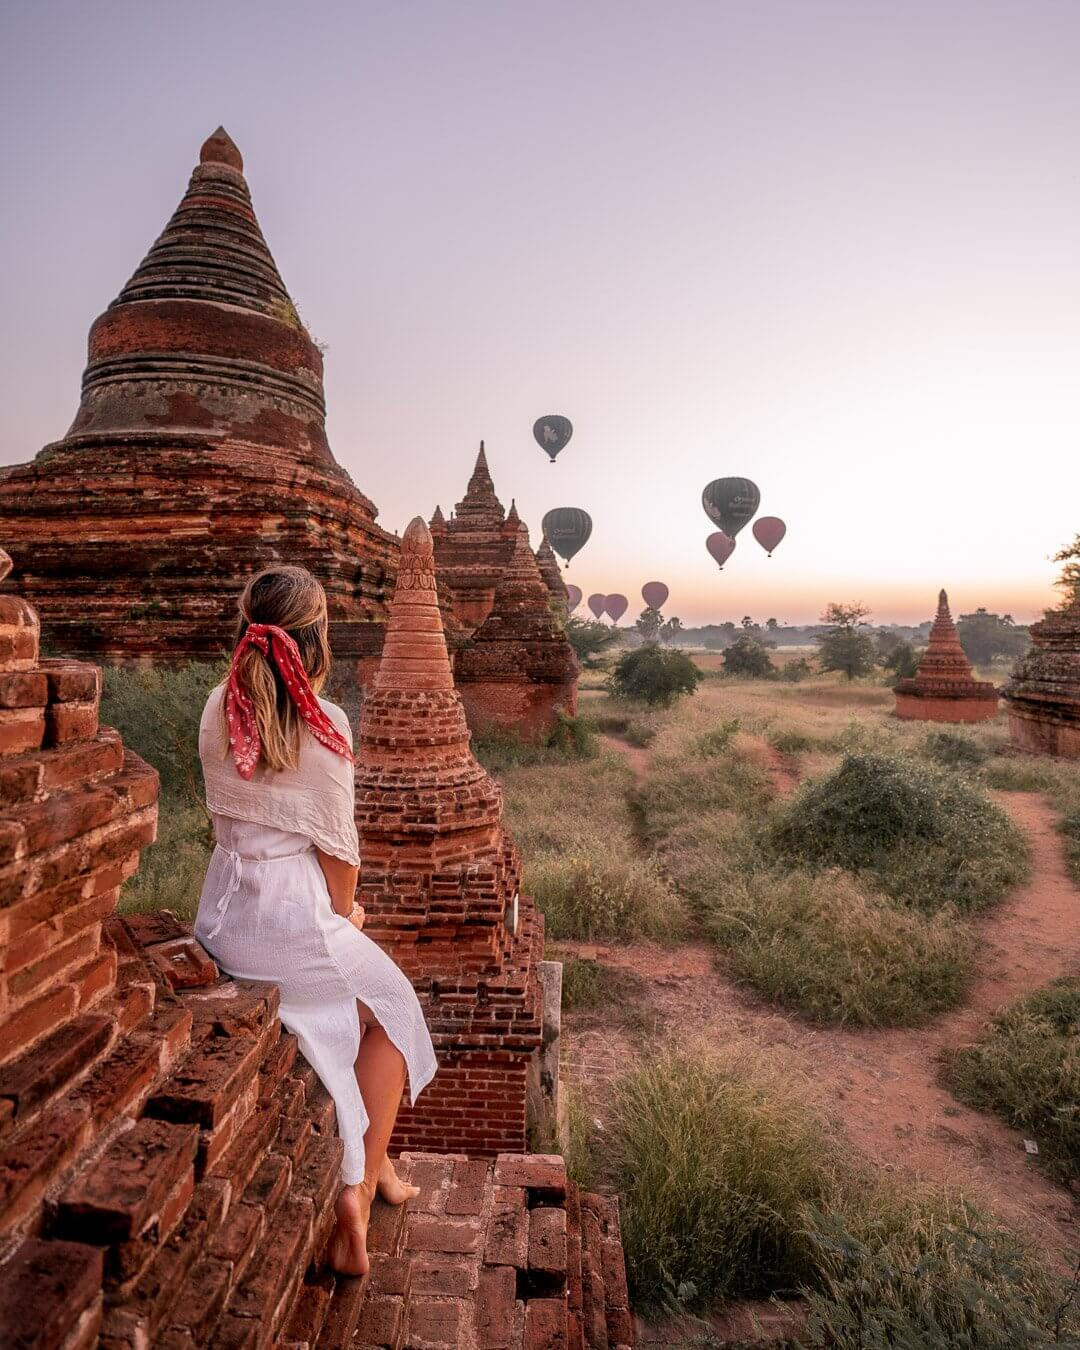 Girl in white dress sitting on a temple in Bagan, Myanmar while the hot air balloons fly overhead at sunrise